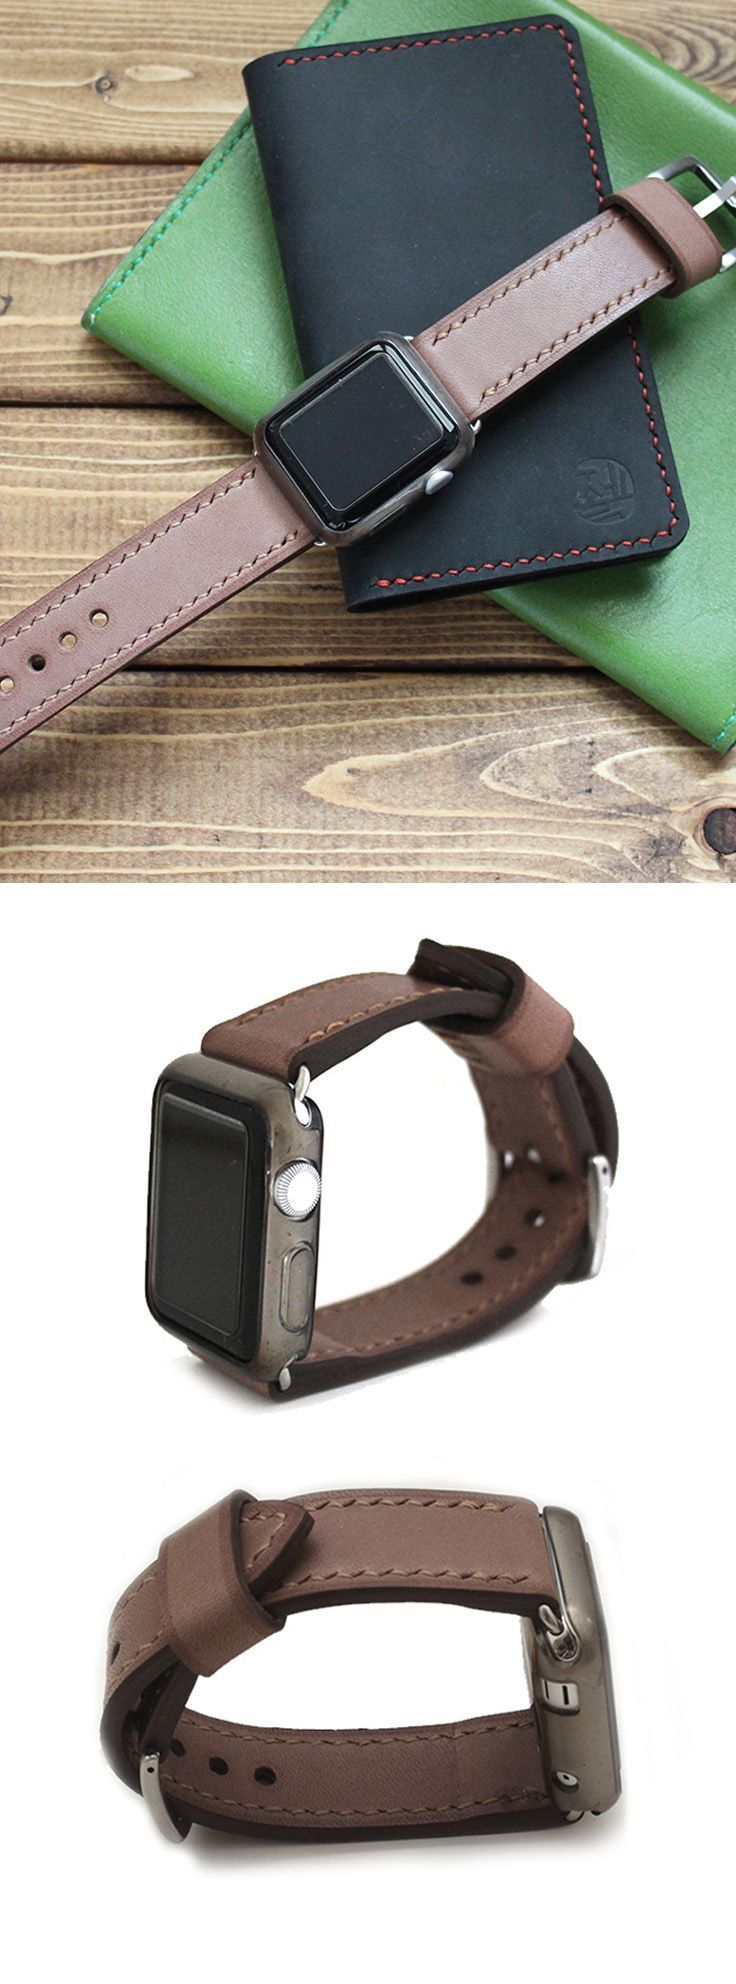 Apple Watch Band, Hand Stitched Apple Watch strap in baseball glove leather. Latte, cream… - http://soheri.guugles.com/2018/02/11/apple-watch-band-hand-stitched-apple-watch-strap-in-baseball-glove-leather-latte-cream-2/